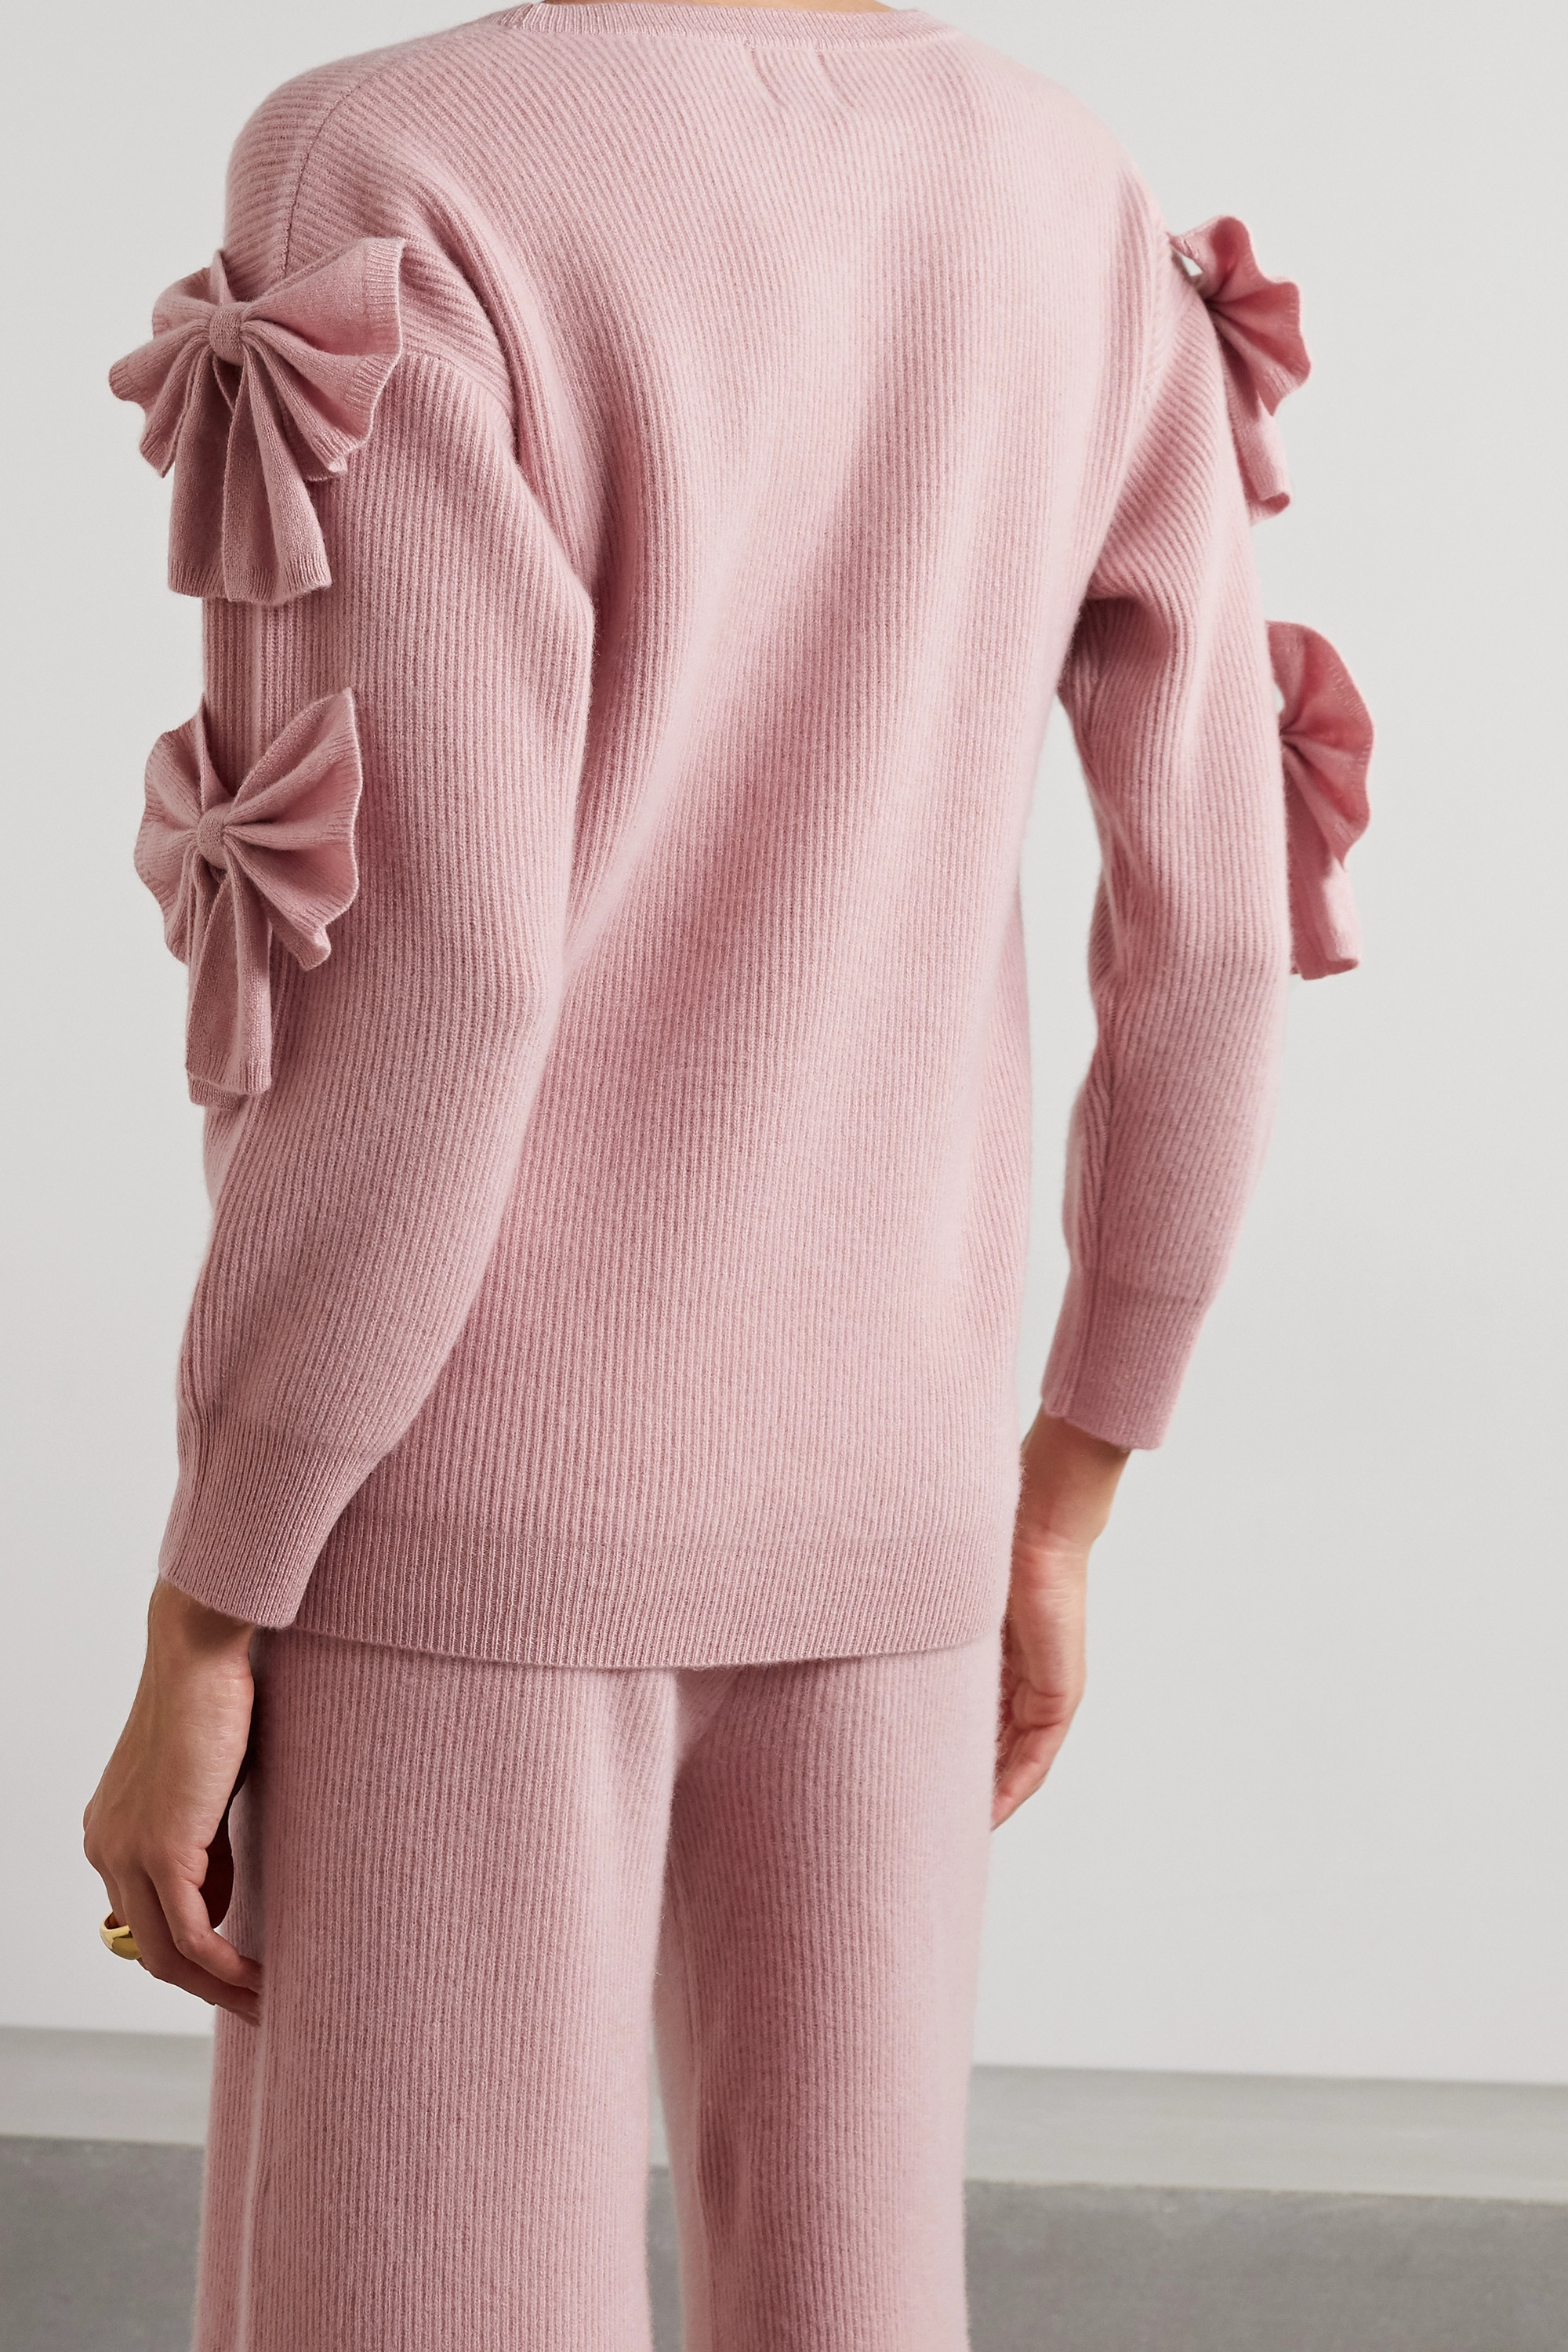 MADELEINE THOMPSON Pretty Woman bow-detailed ribbed cashmere sweater